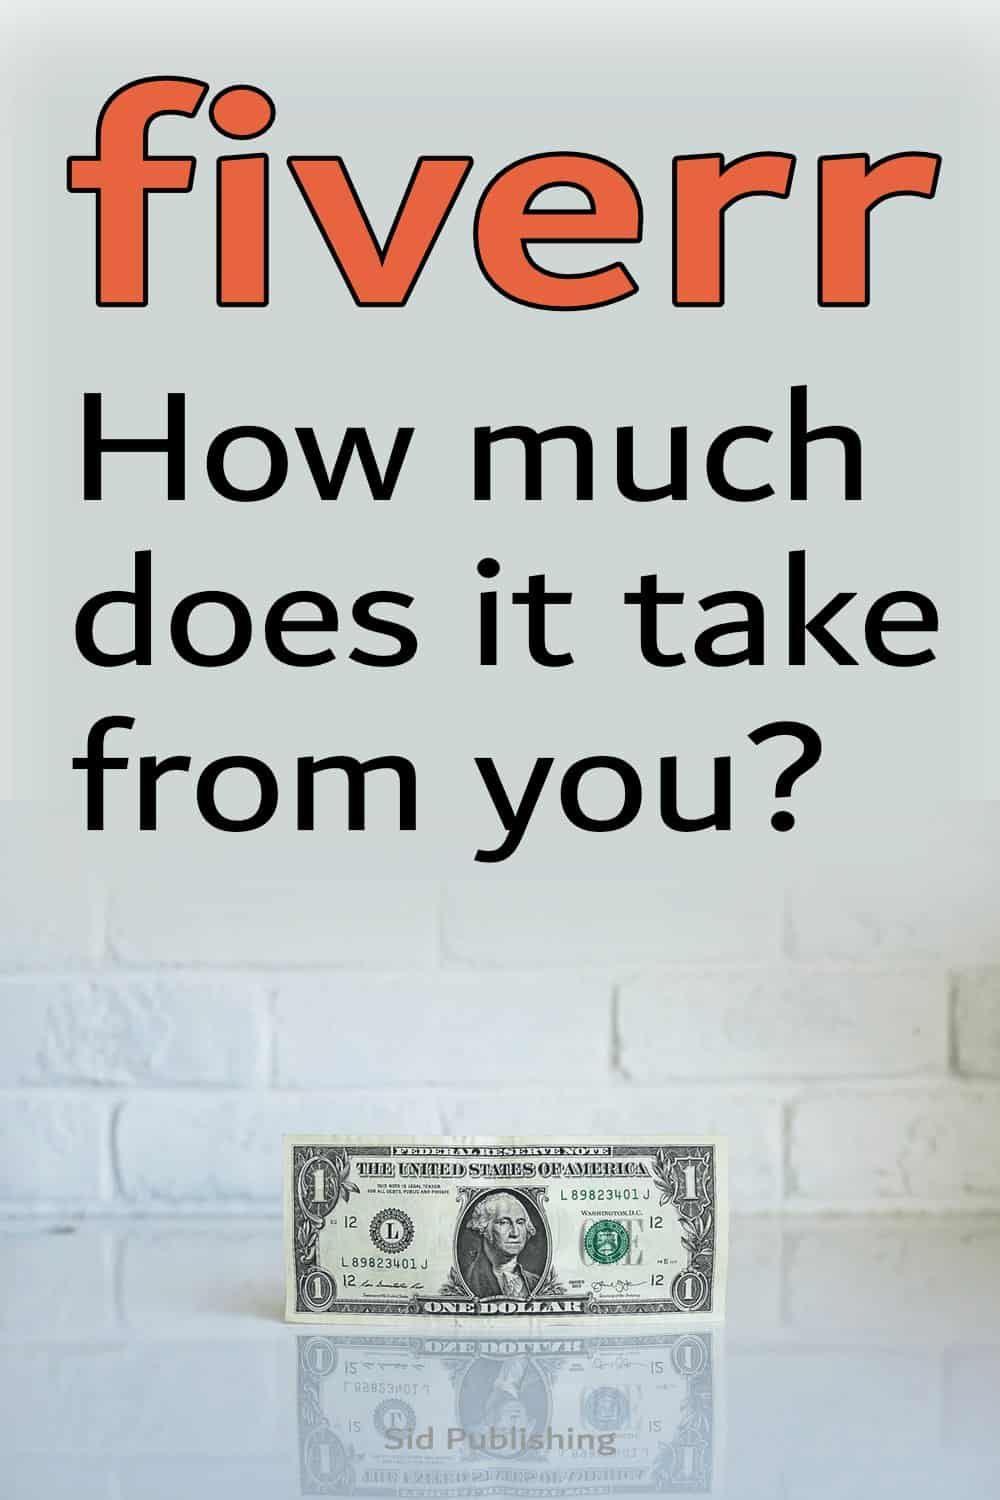 how-much-does-fiverr-take